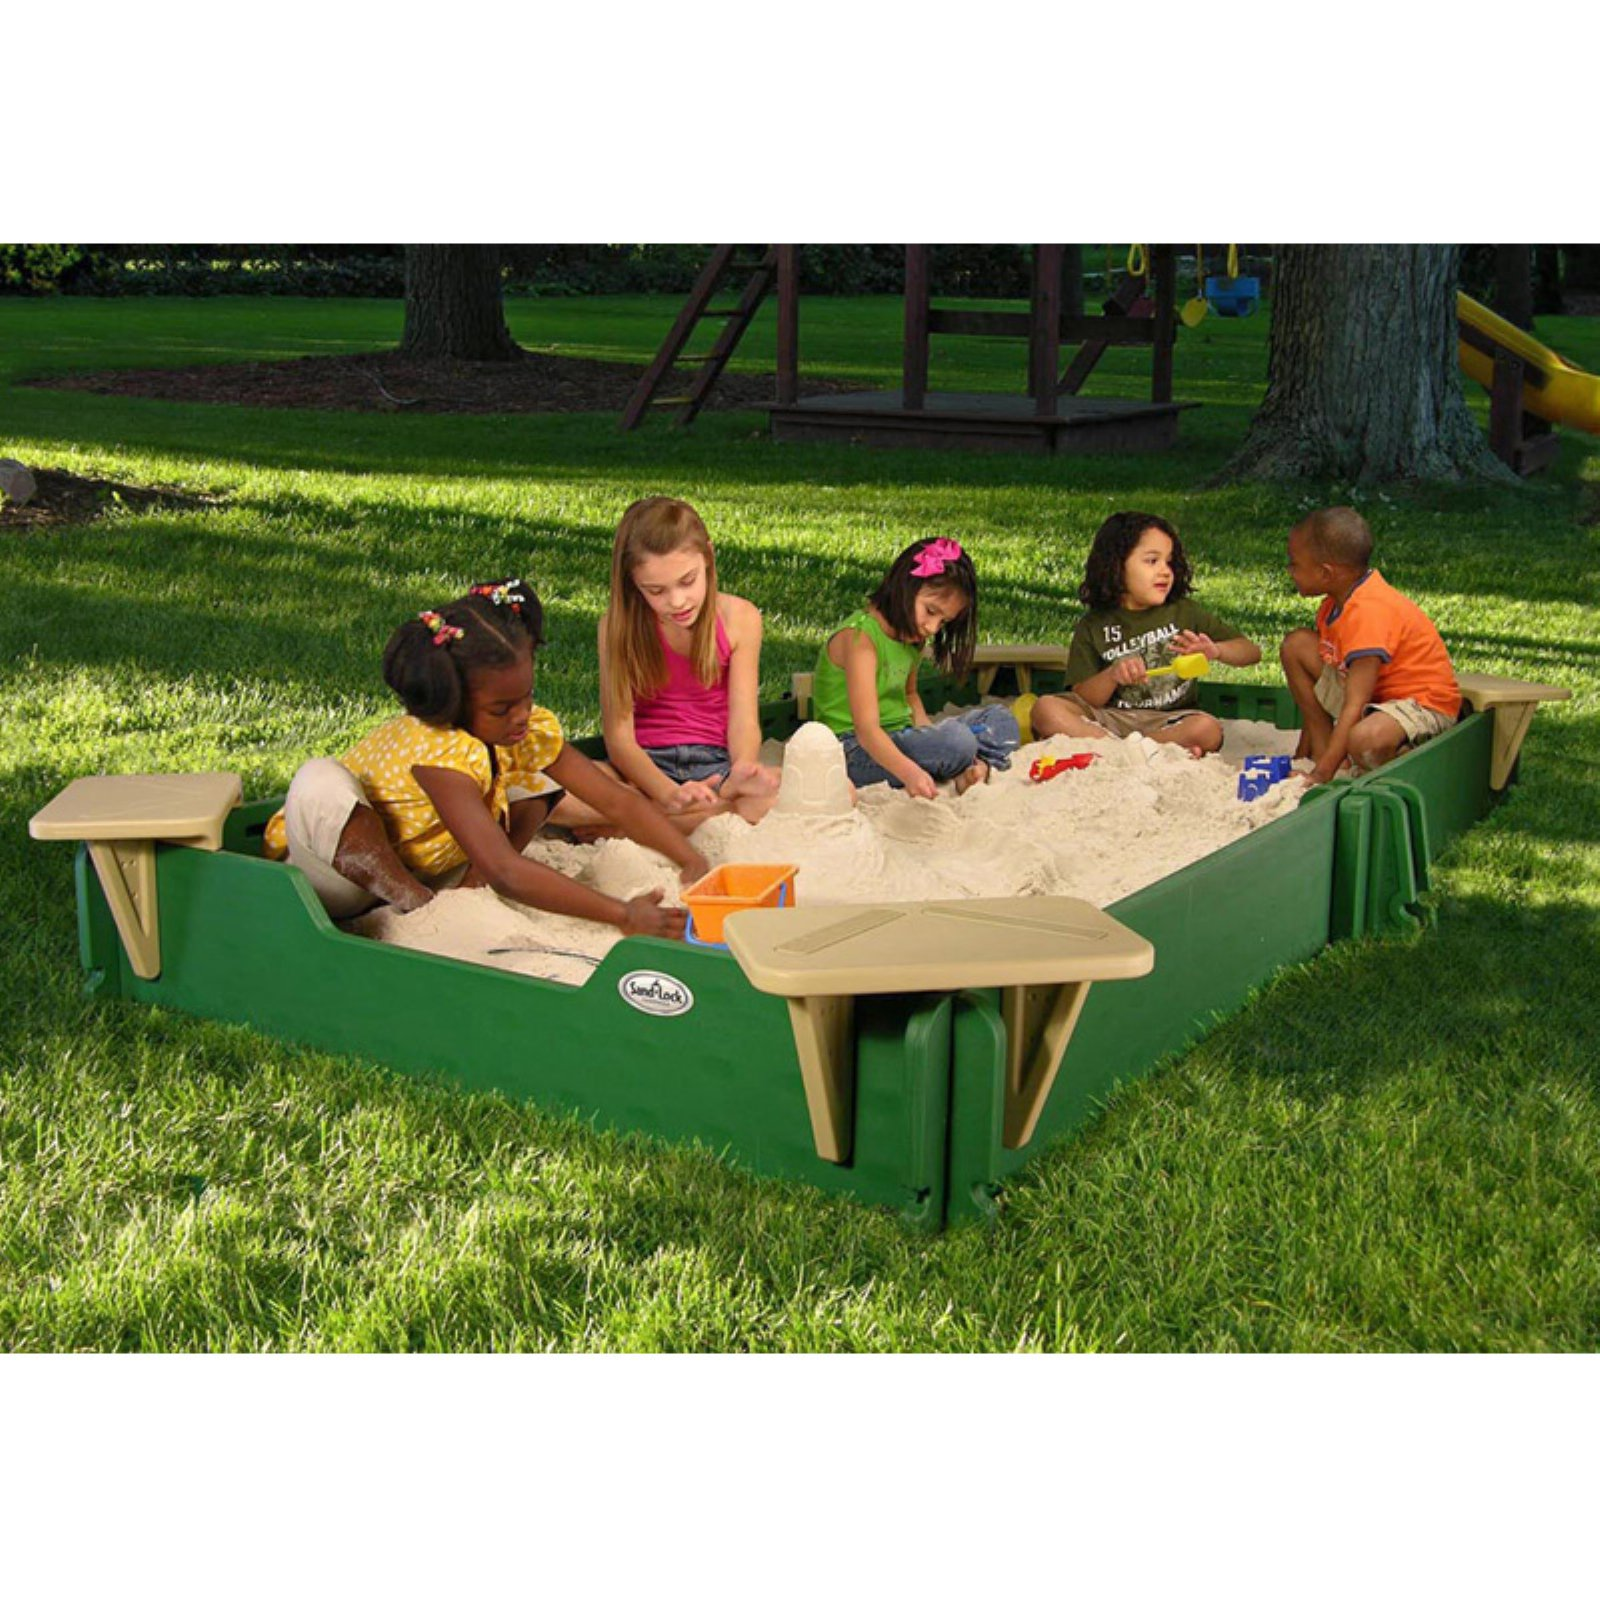 Sandlock 5 x 10-ft. Sandbox with Cover by Sandlock Sandboxes